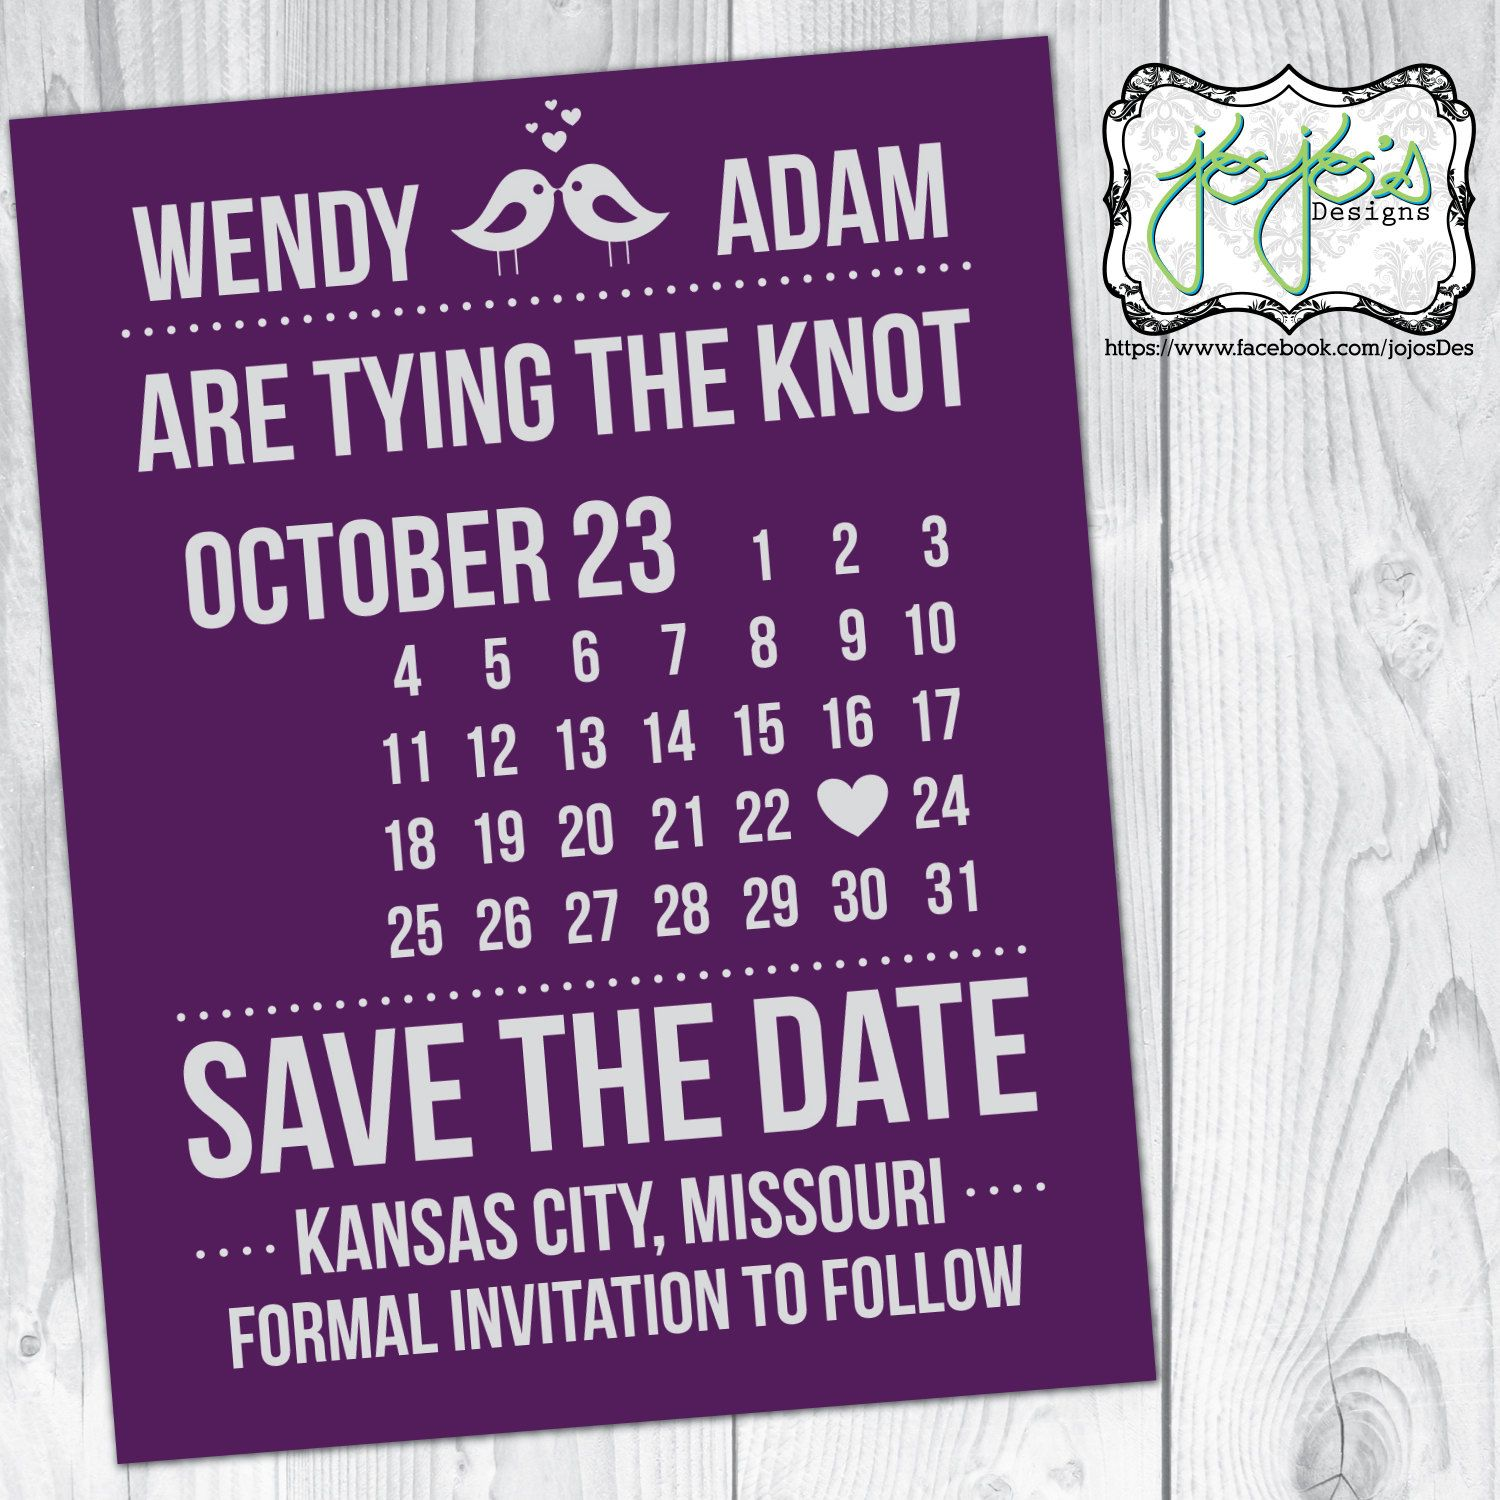 Calendar, Plum and Silver/Gray Save the Date Announcement Card (Digital File) by jojosdesigns on Etsy